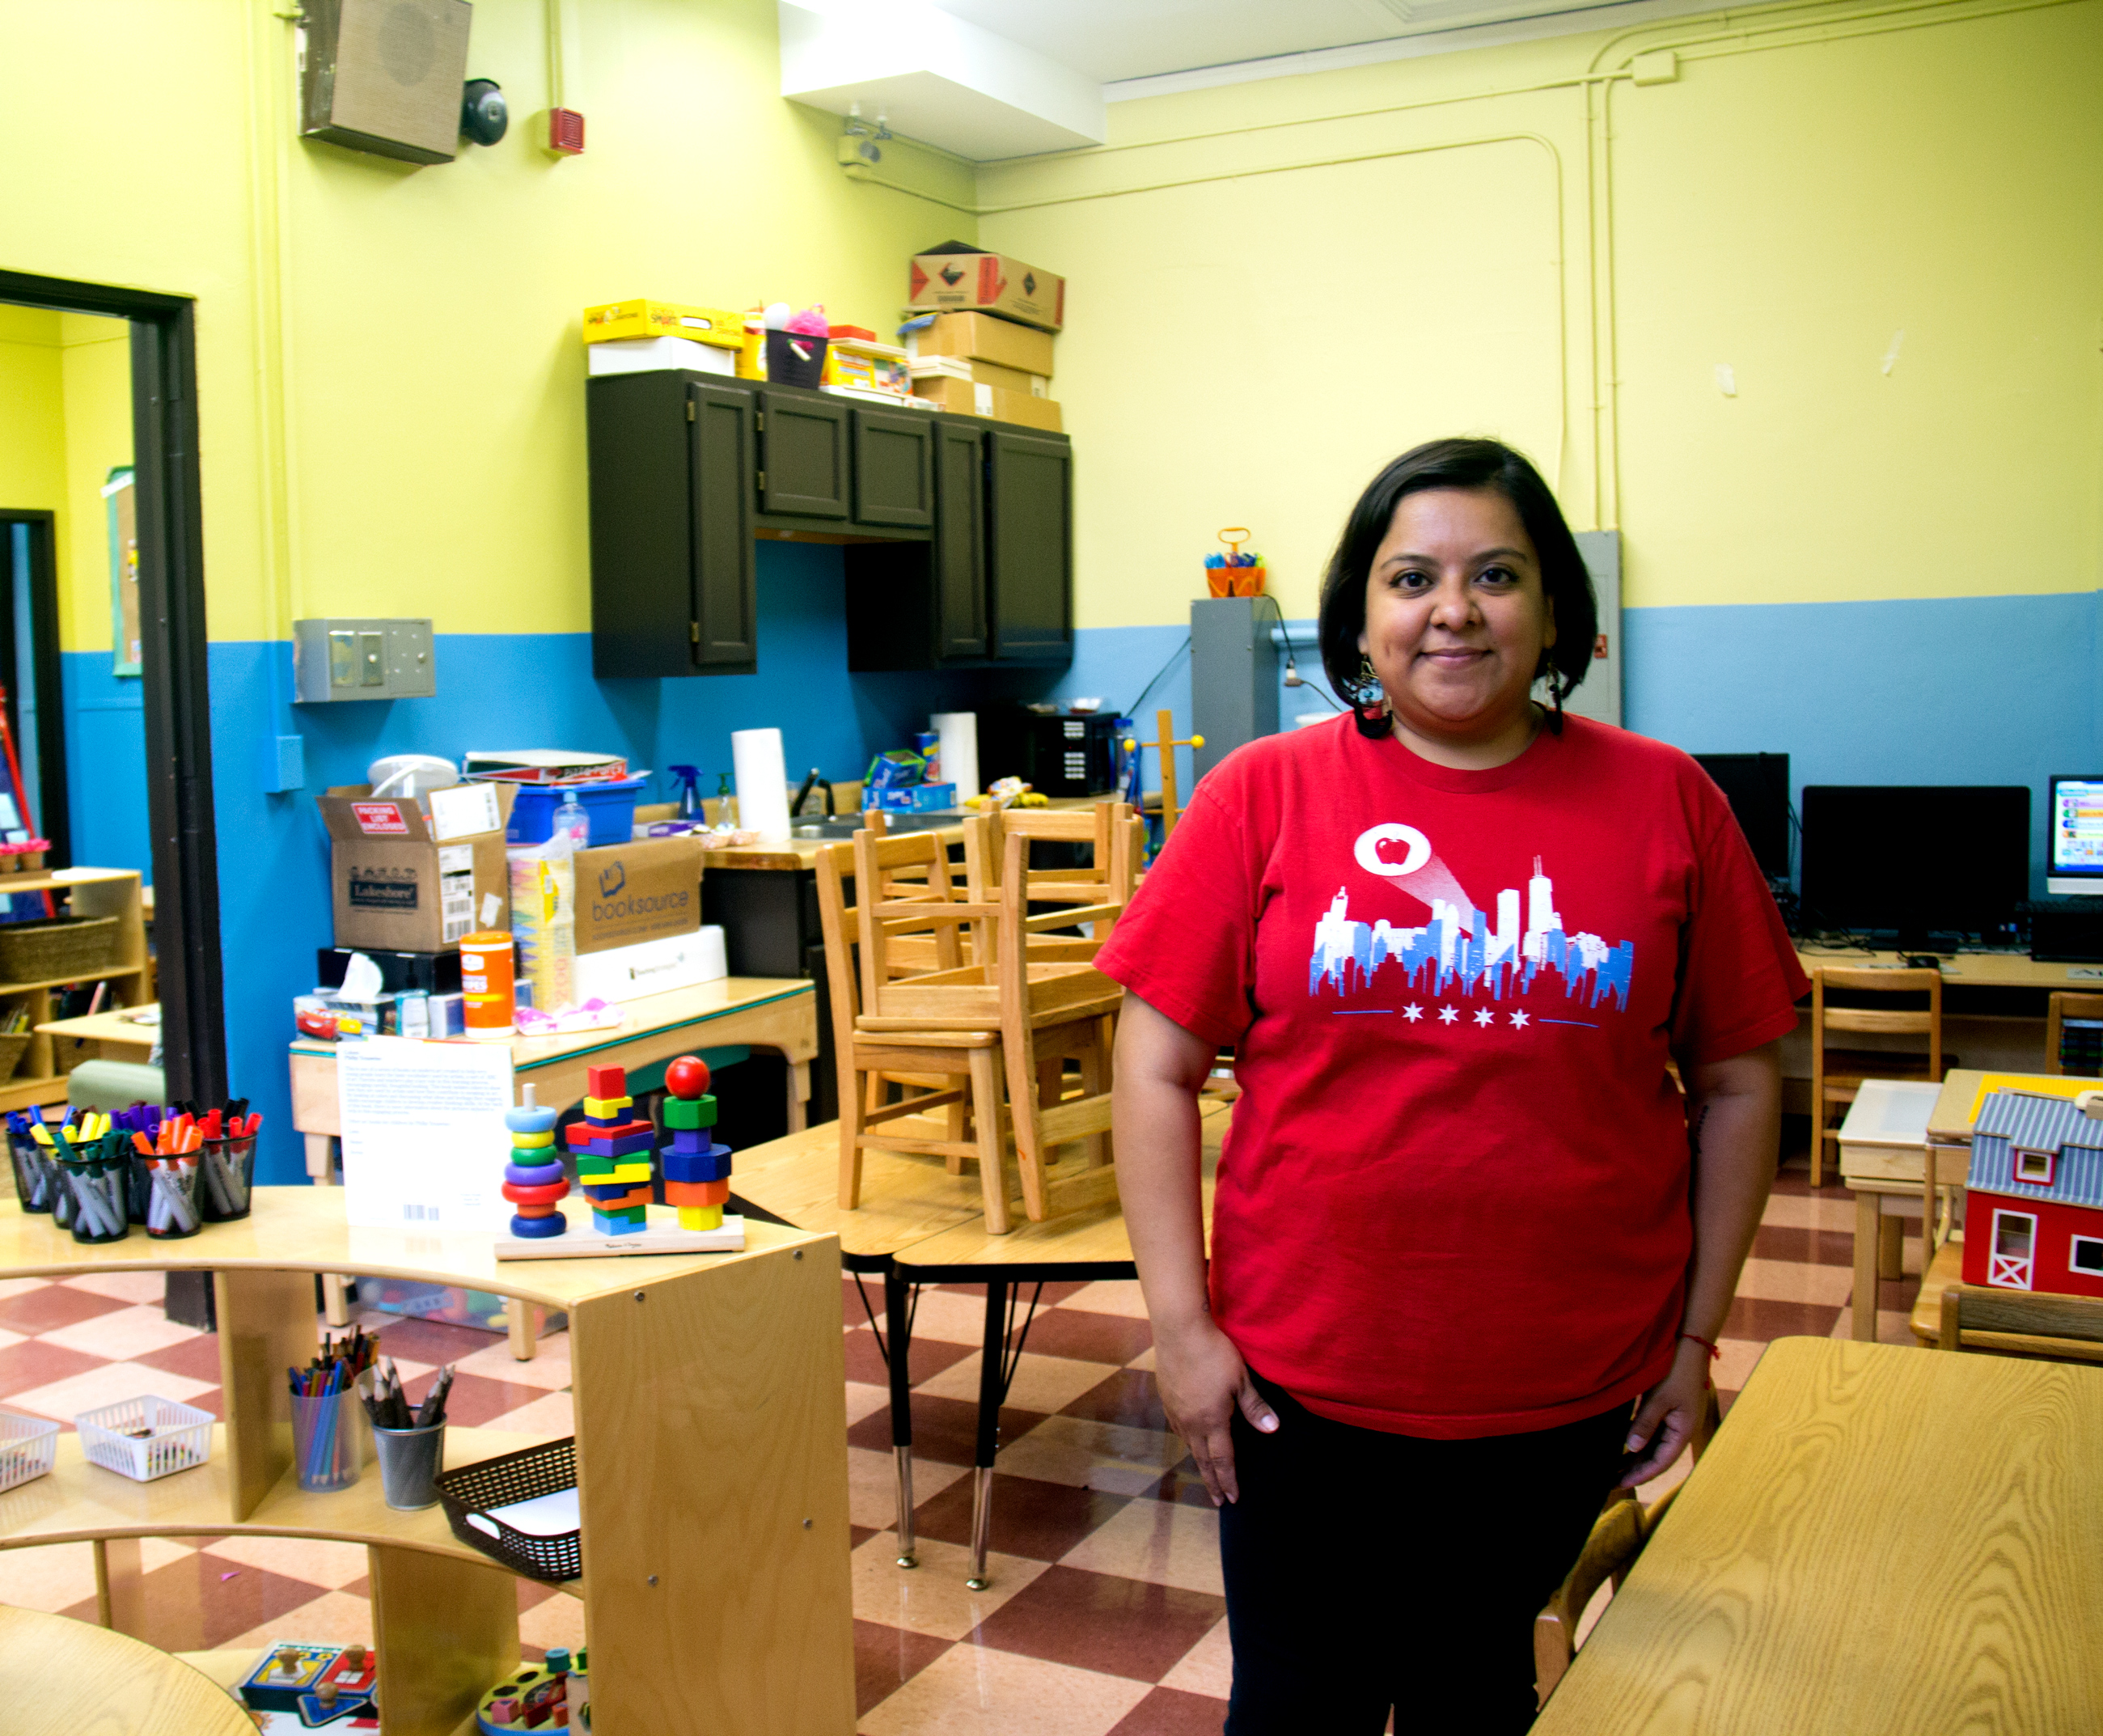 Vanessa Saucedo is a preschool teacher at Telpochcalli Elementary School in the city's Little Village neighborhood. (Susie An/WBEZ)